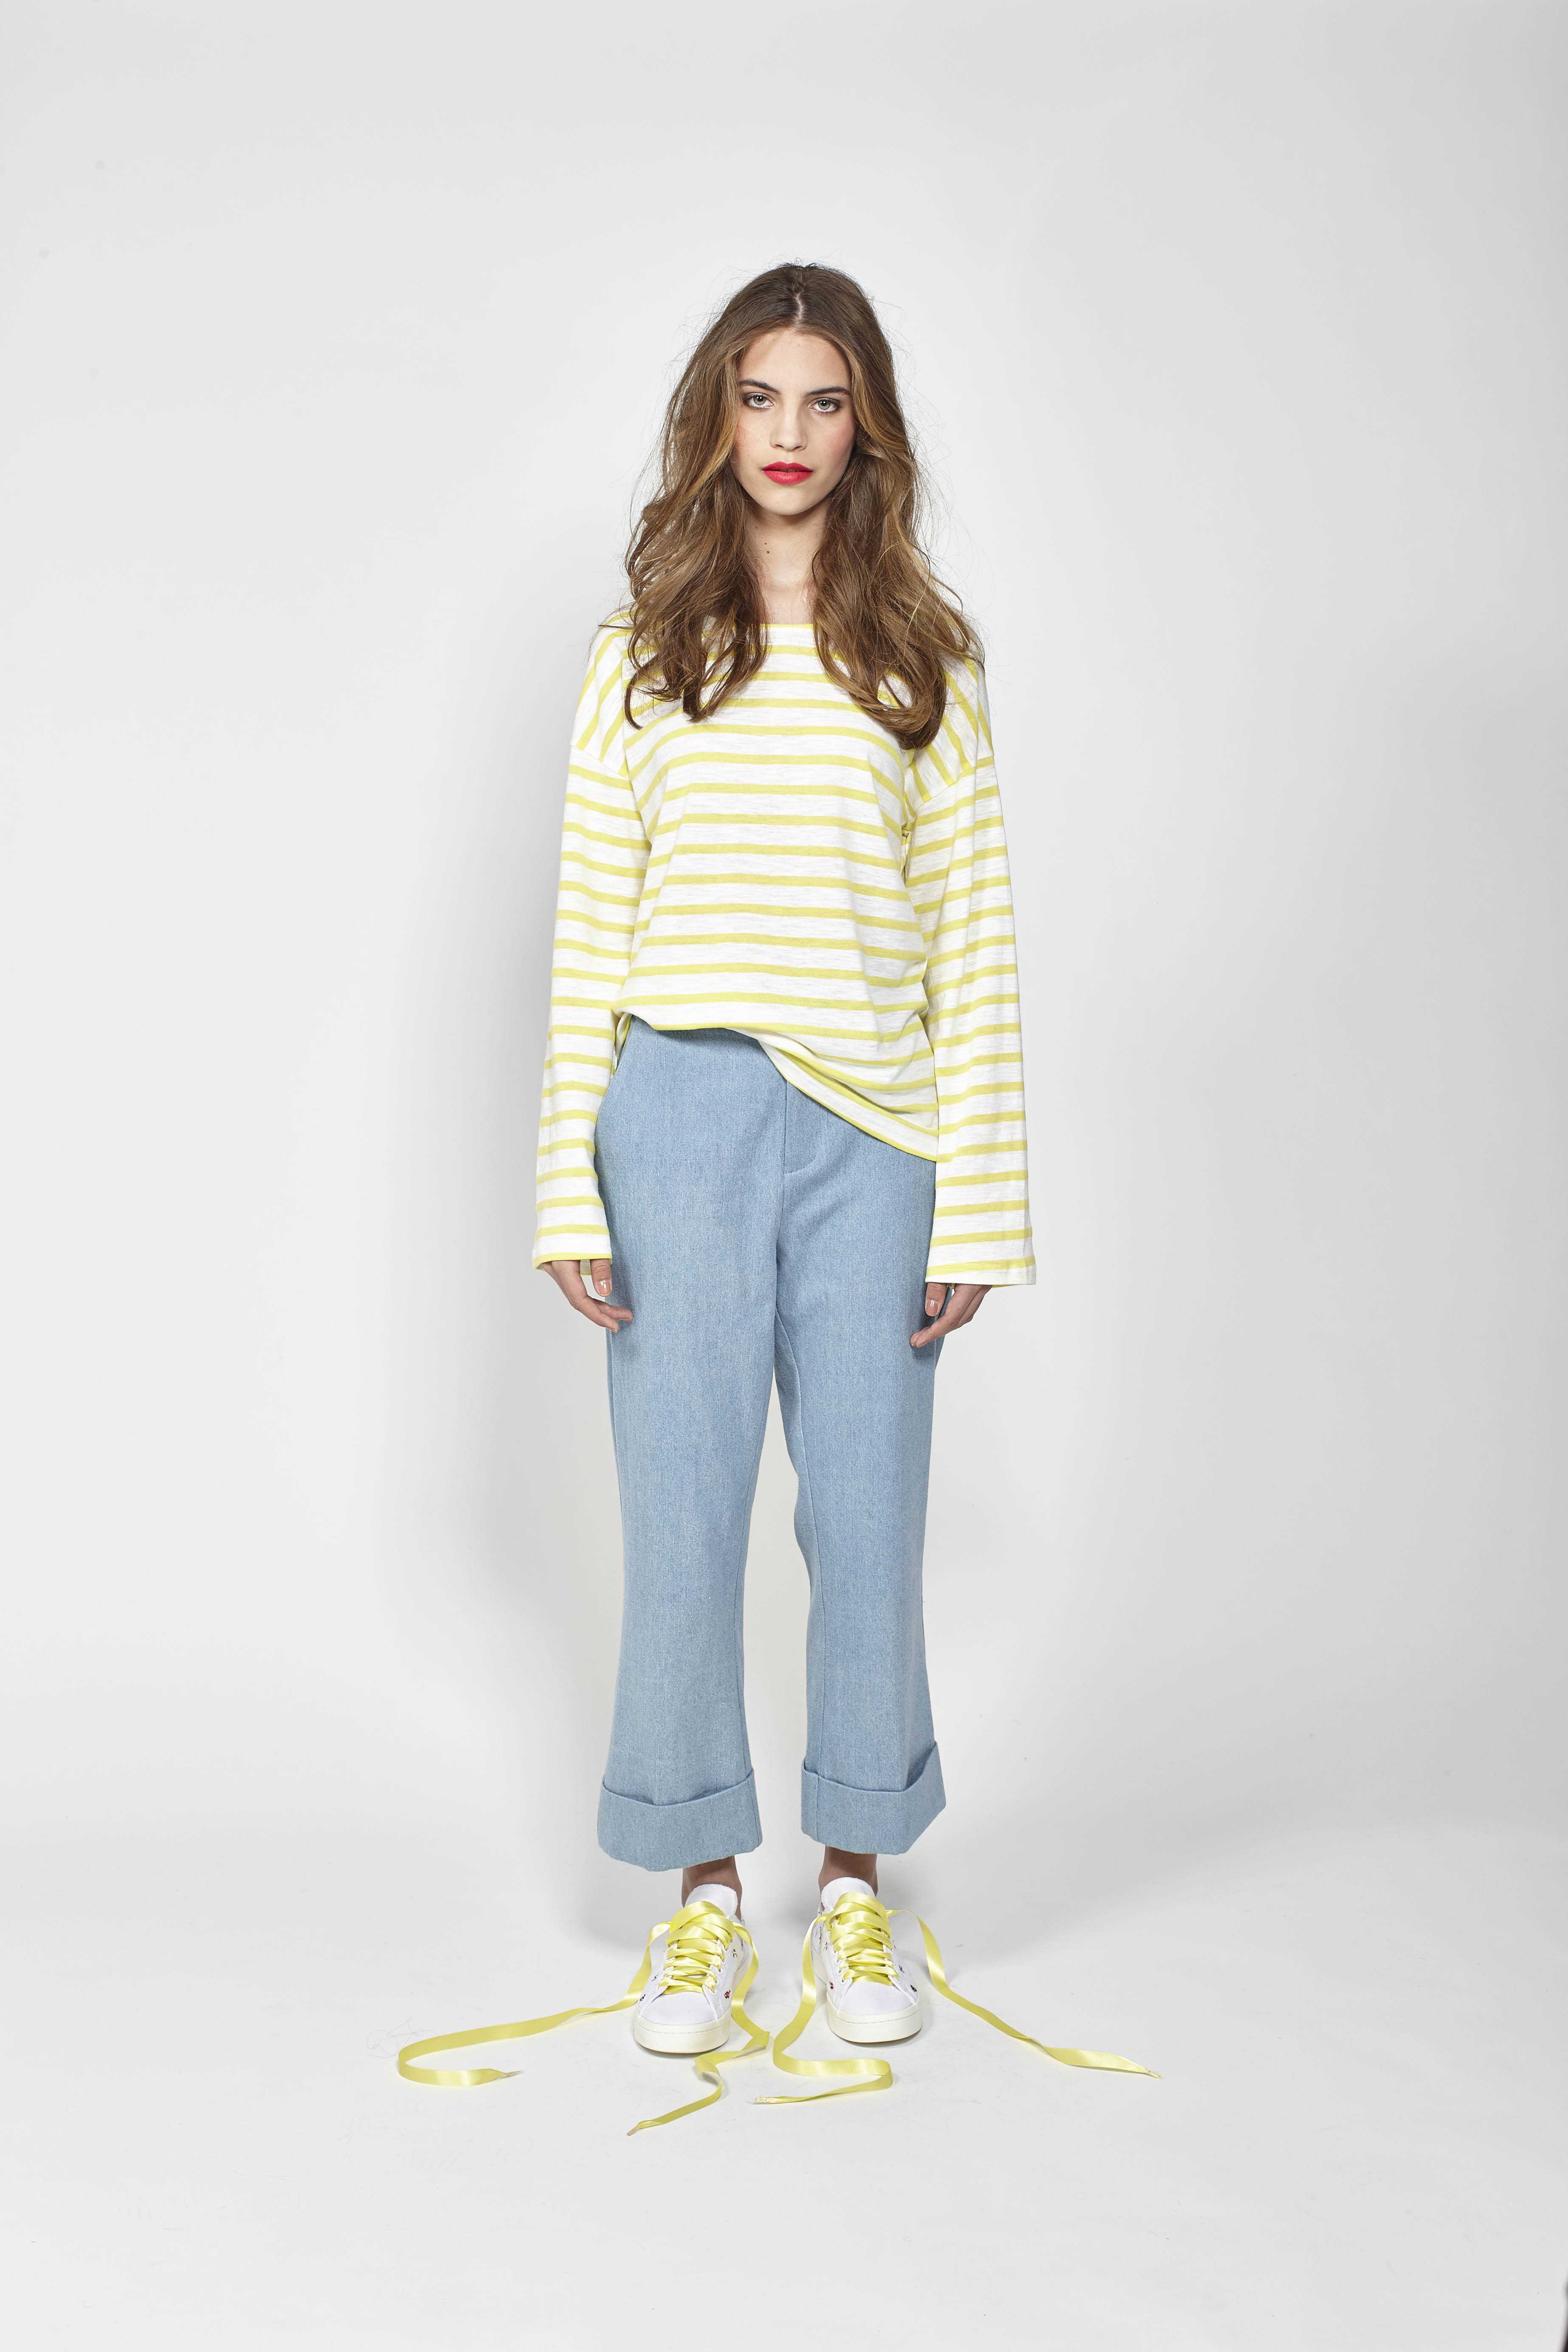 LB1067 LEO+BE Lucky Tee - Yellow, RRP$98.00 and LB1094 LEO+BE Rad Pant - Denim, RRP$159.00